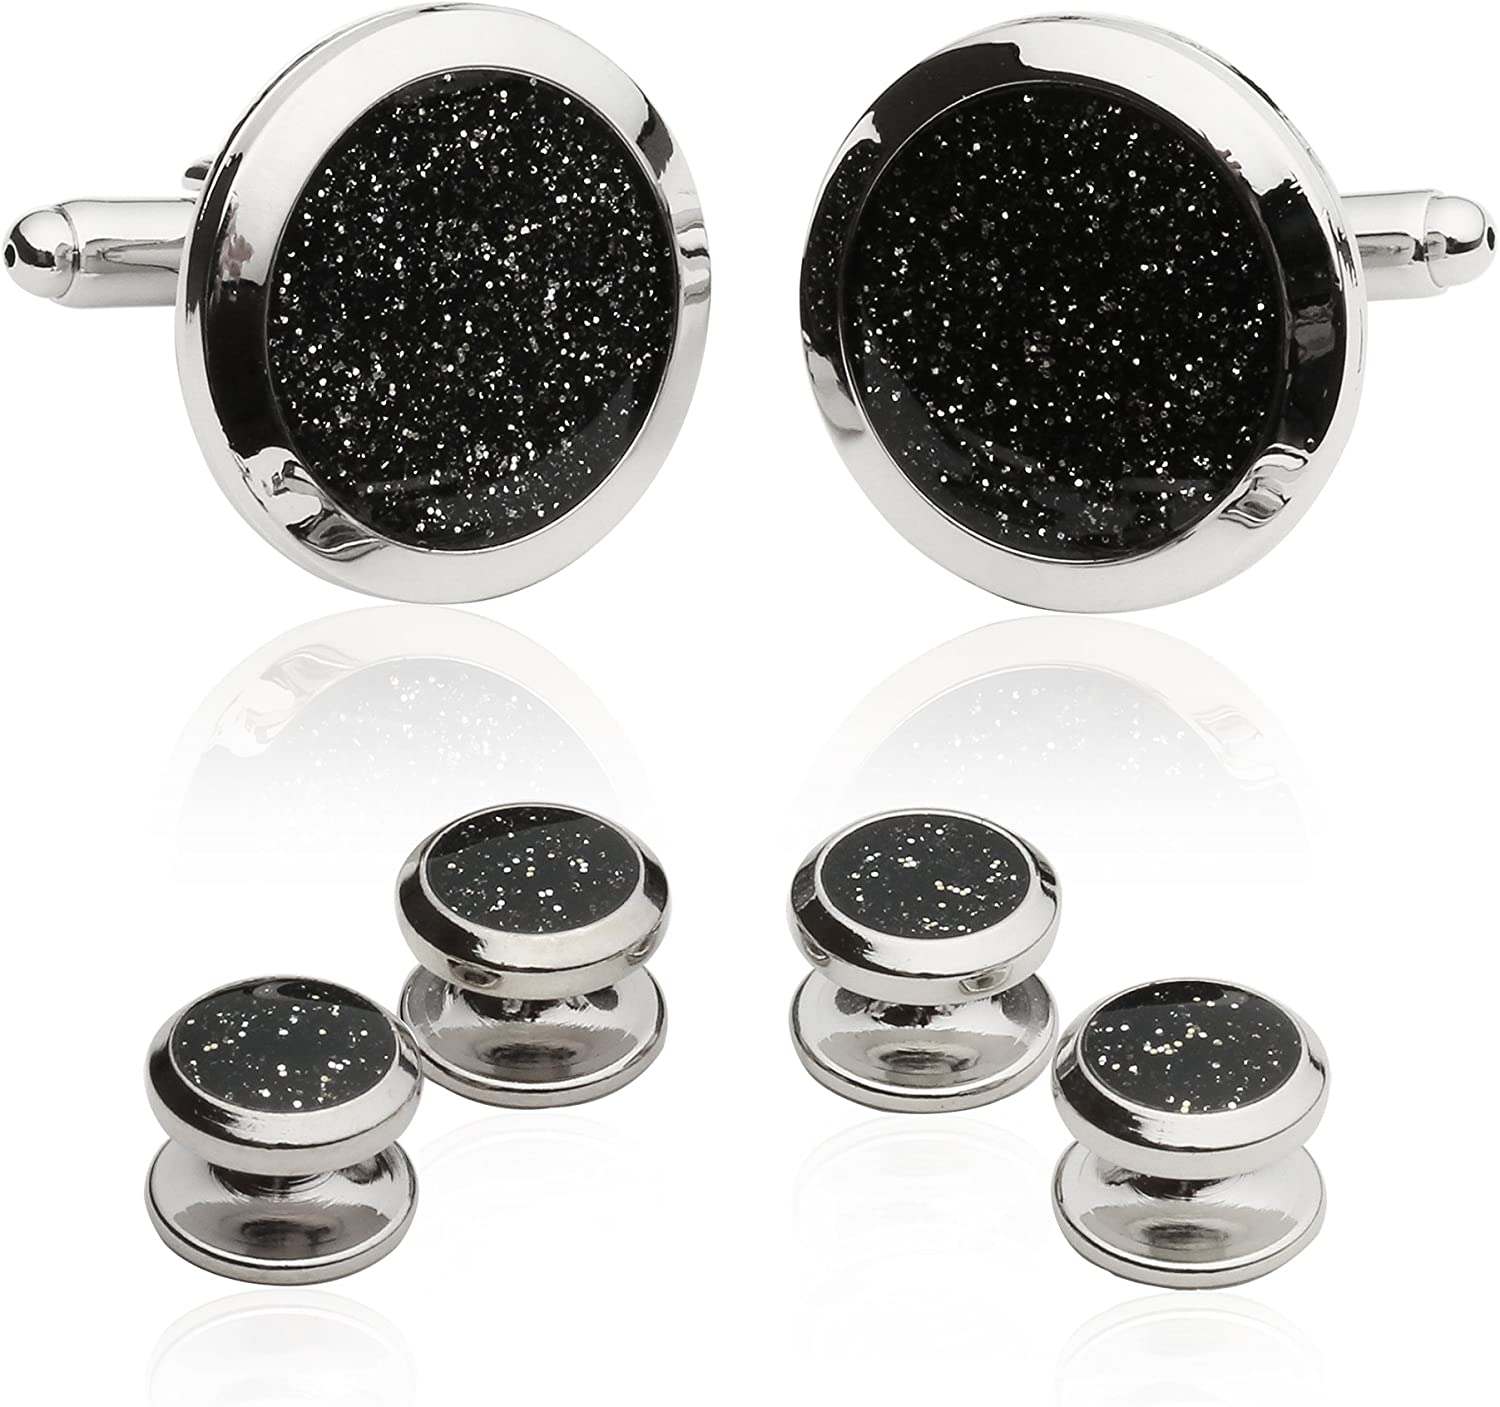 Cuff-Daddy Mens Tuxedo Cuff Links and Studs Diamond Dust Set from with Presentation Box